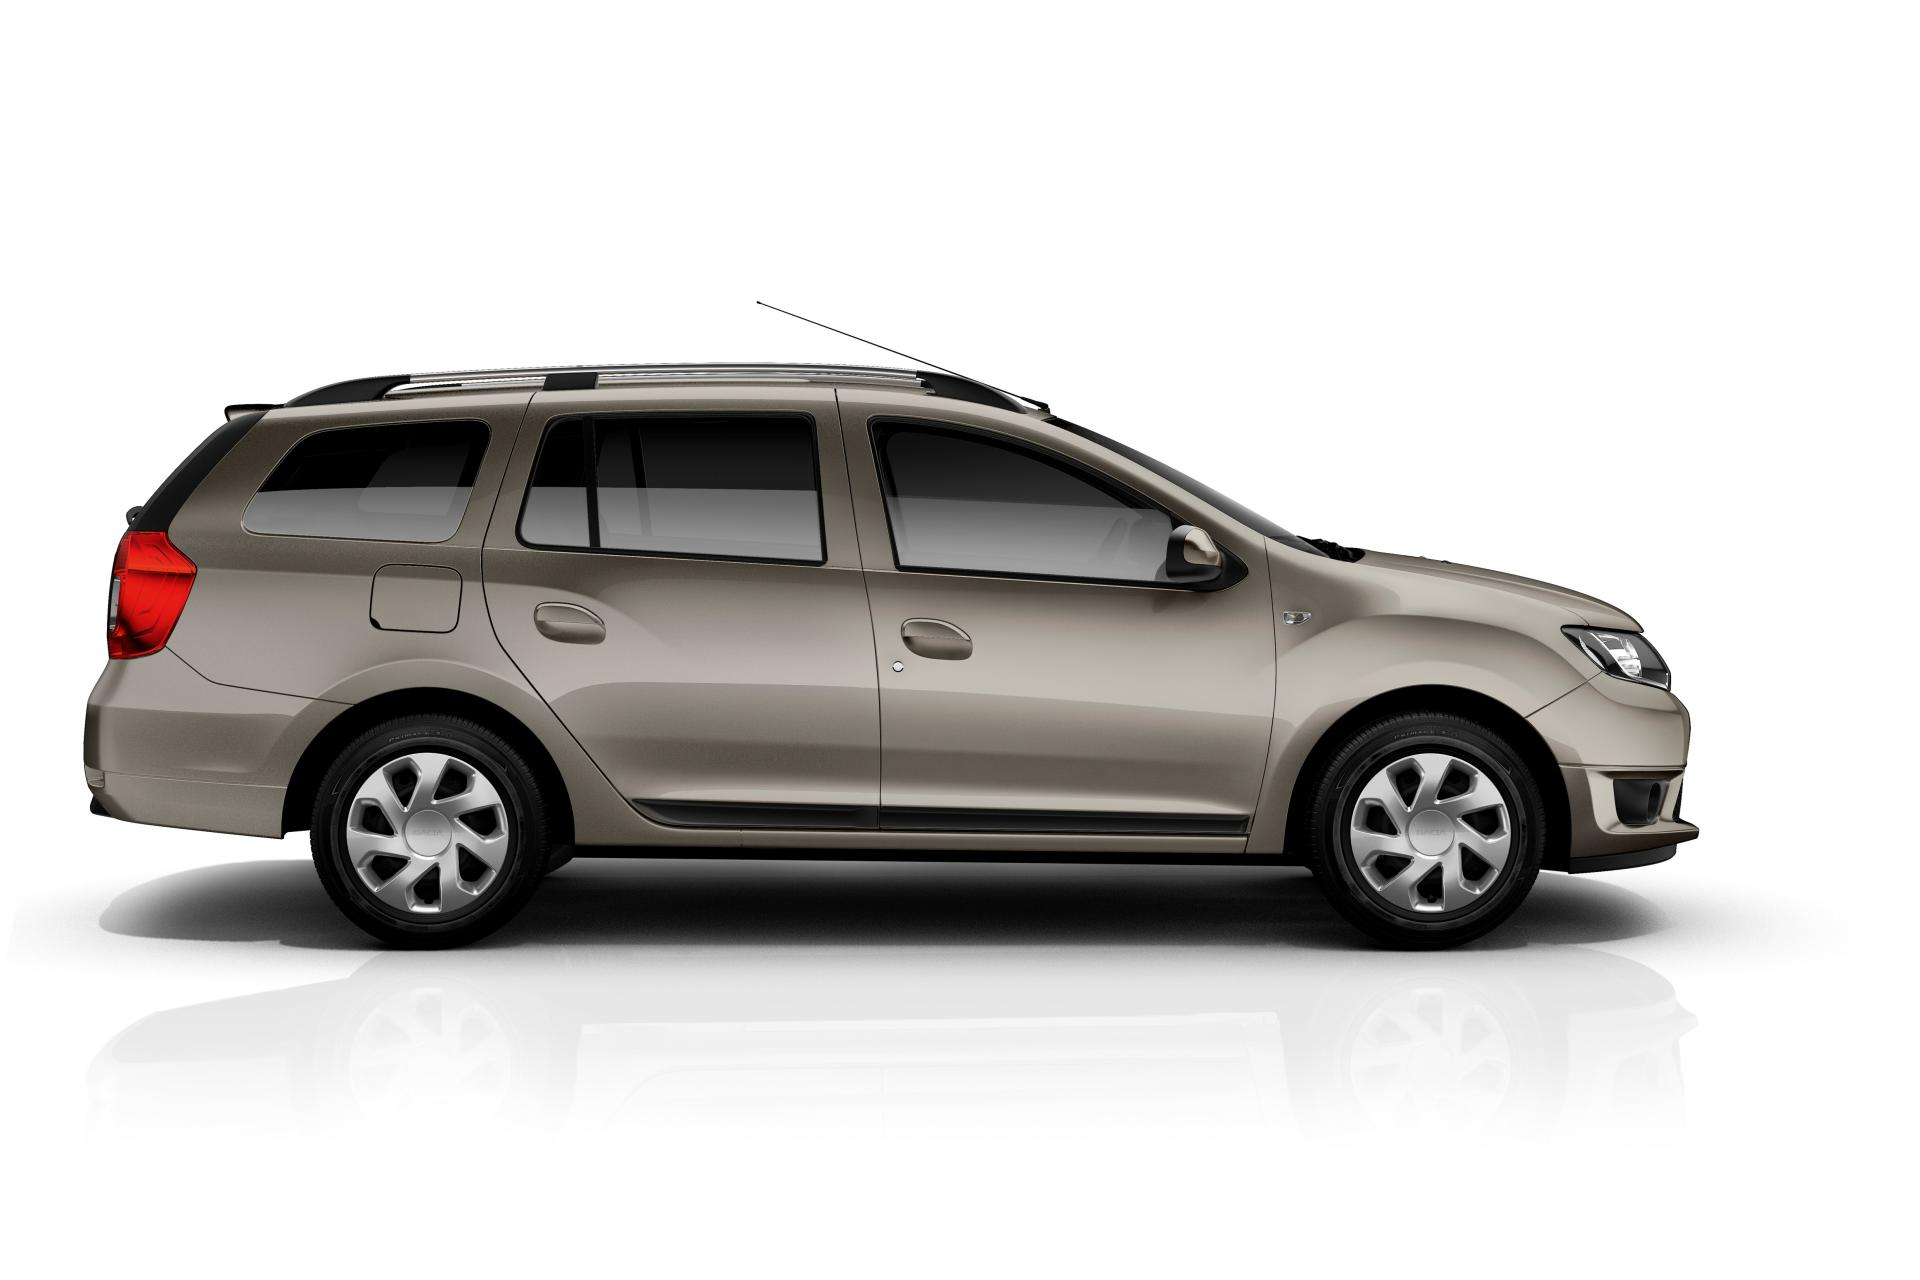 2014 dacia logan mcv news and information. Black Bedroom Furniture Sets. Home Design Ideas